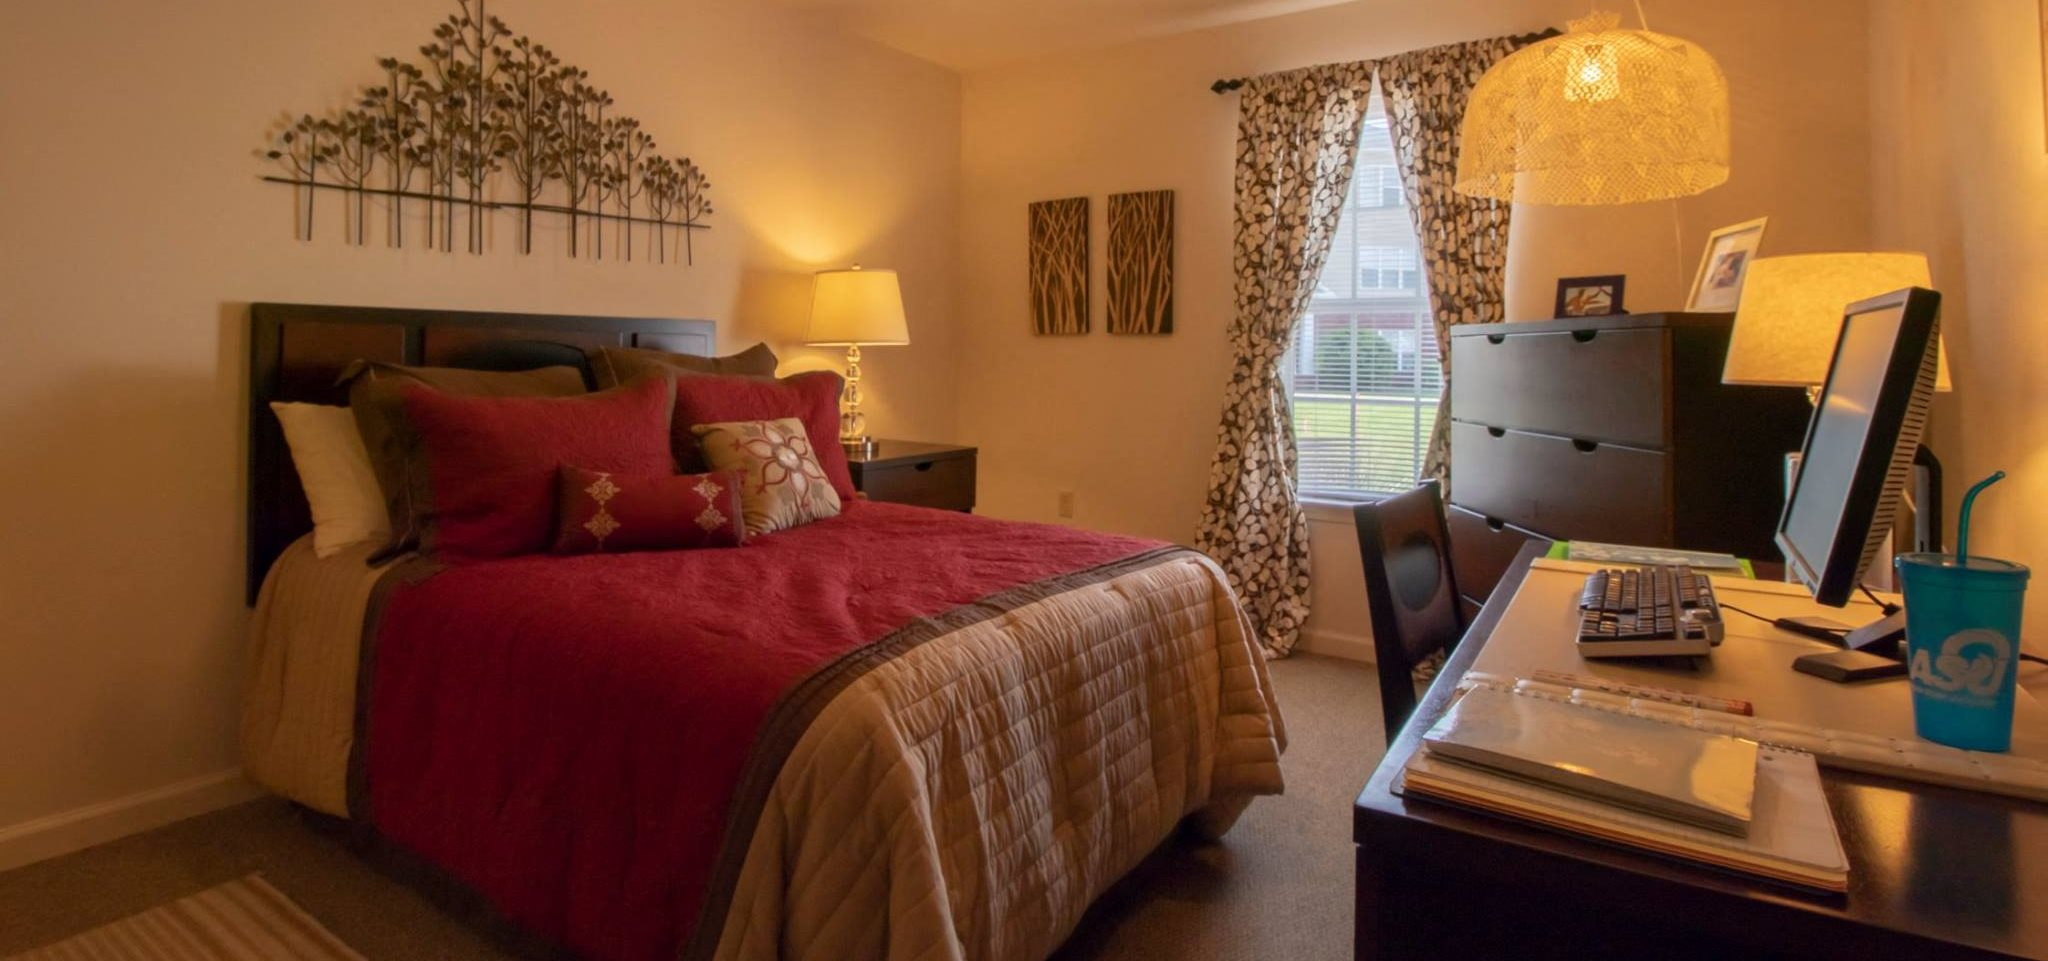 Apartments in San Angelo TX Bed2